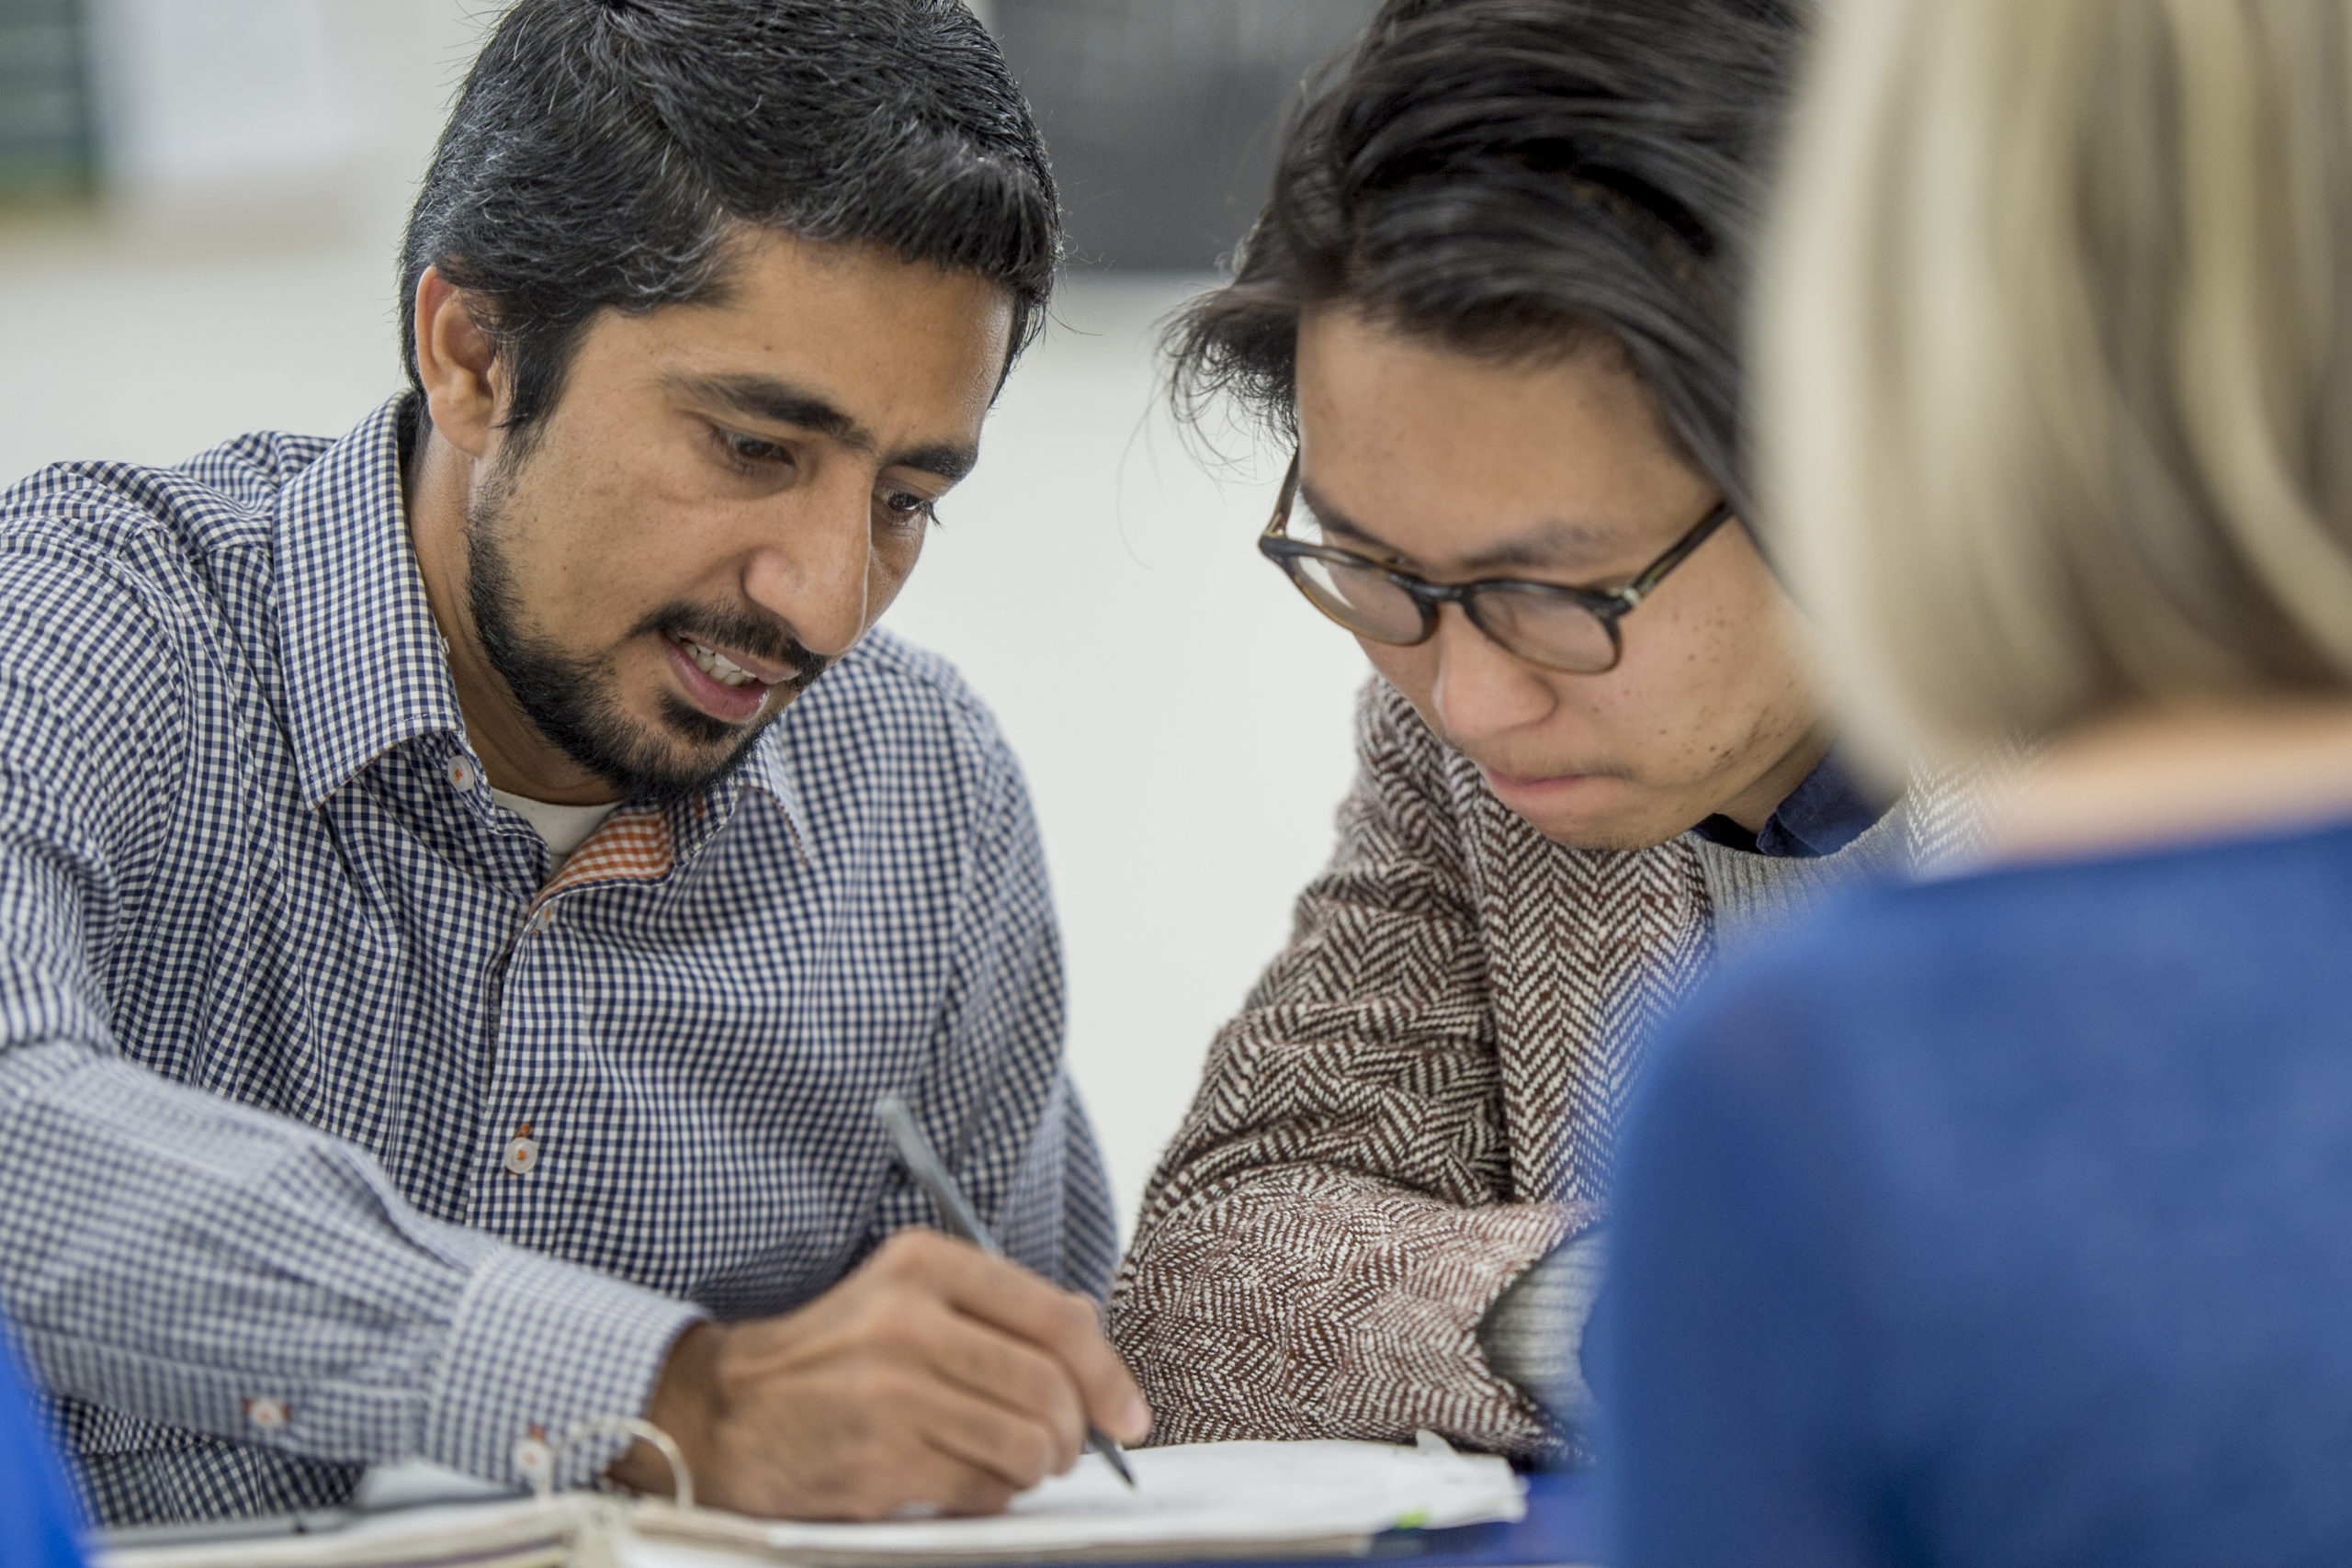 A multi-ethnic group of adults are studying together after class. They are in a university classroom taking continuing adult education classes.